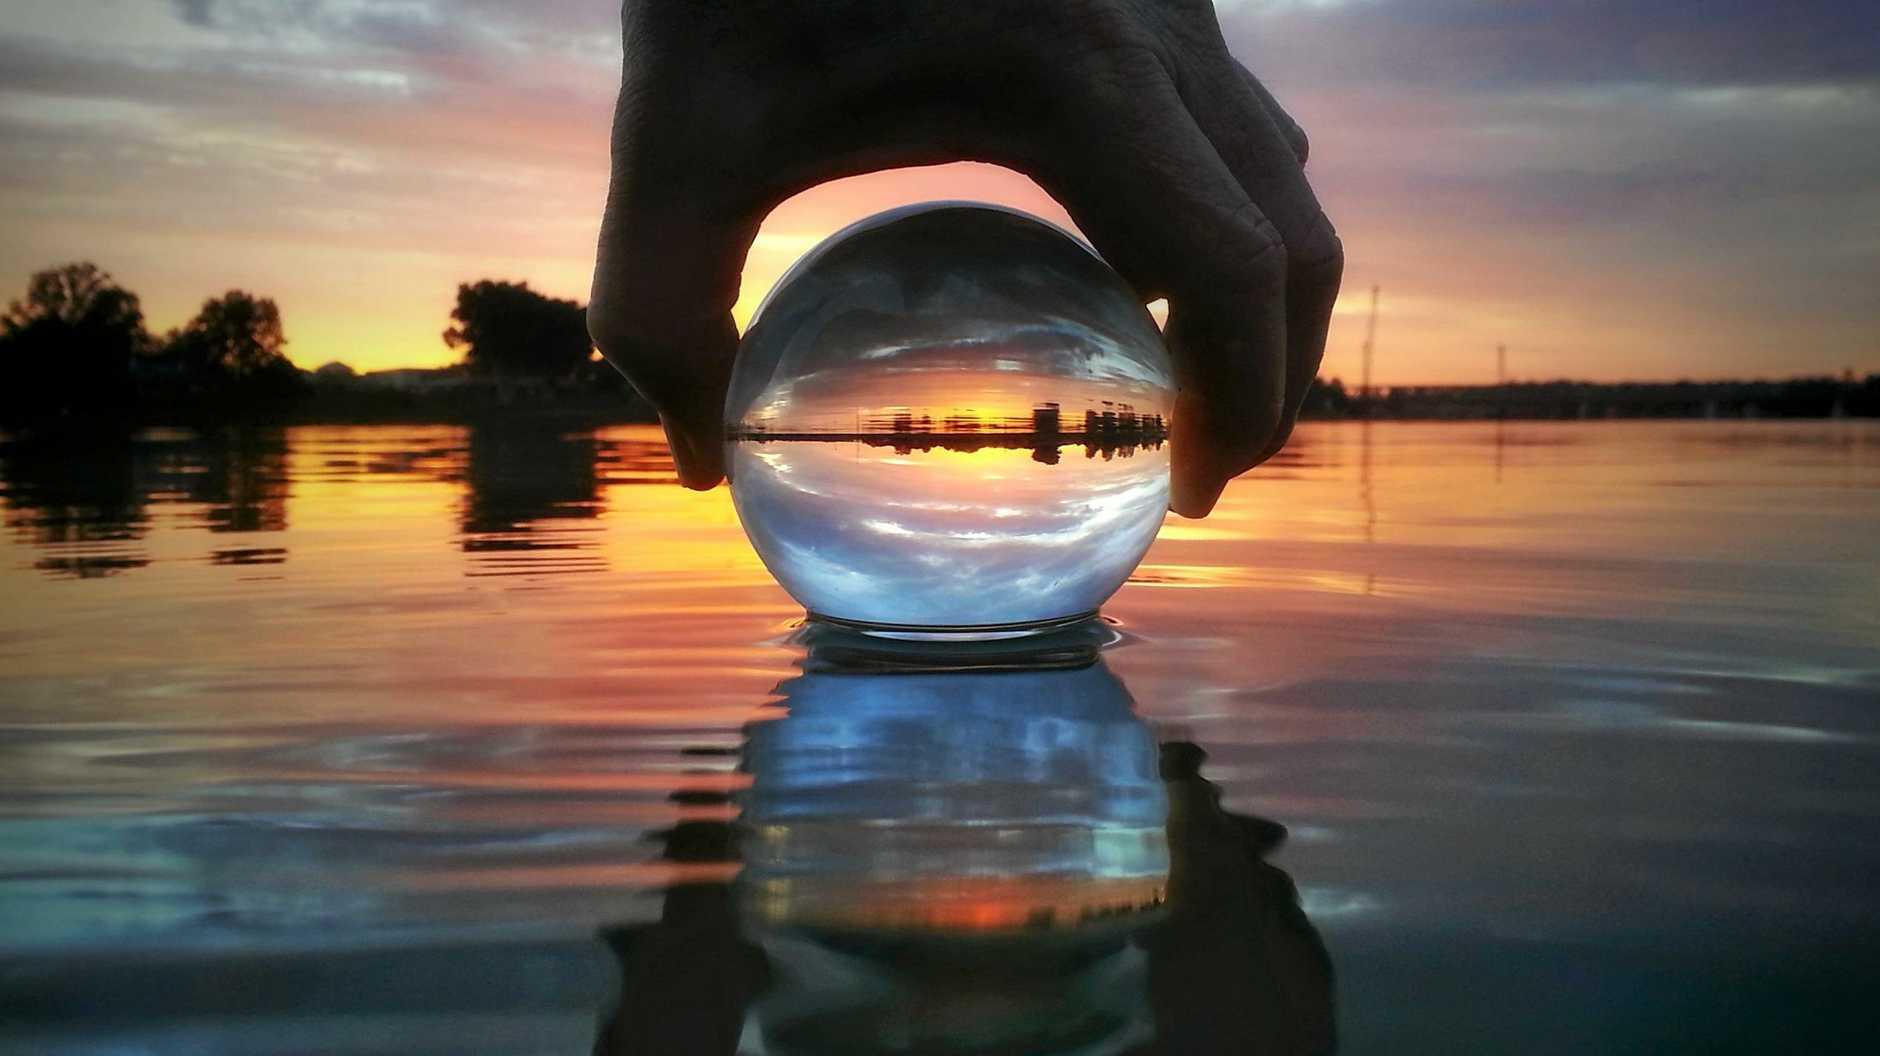 RIVER ORB: This creative shot on the Clarence river wonderfully captures a bright sunset.